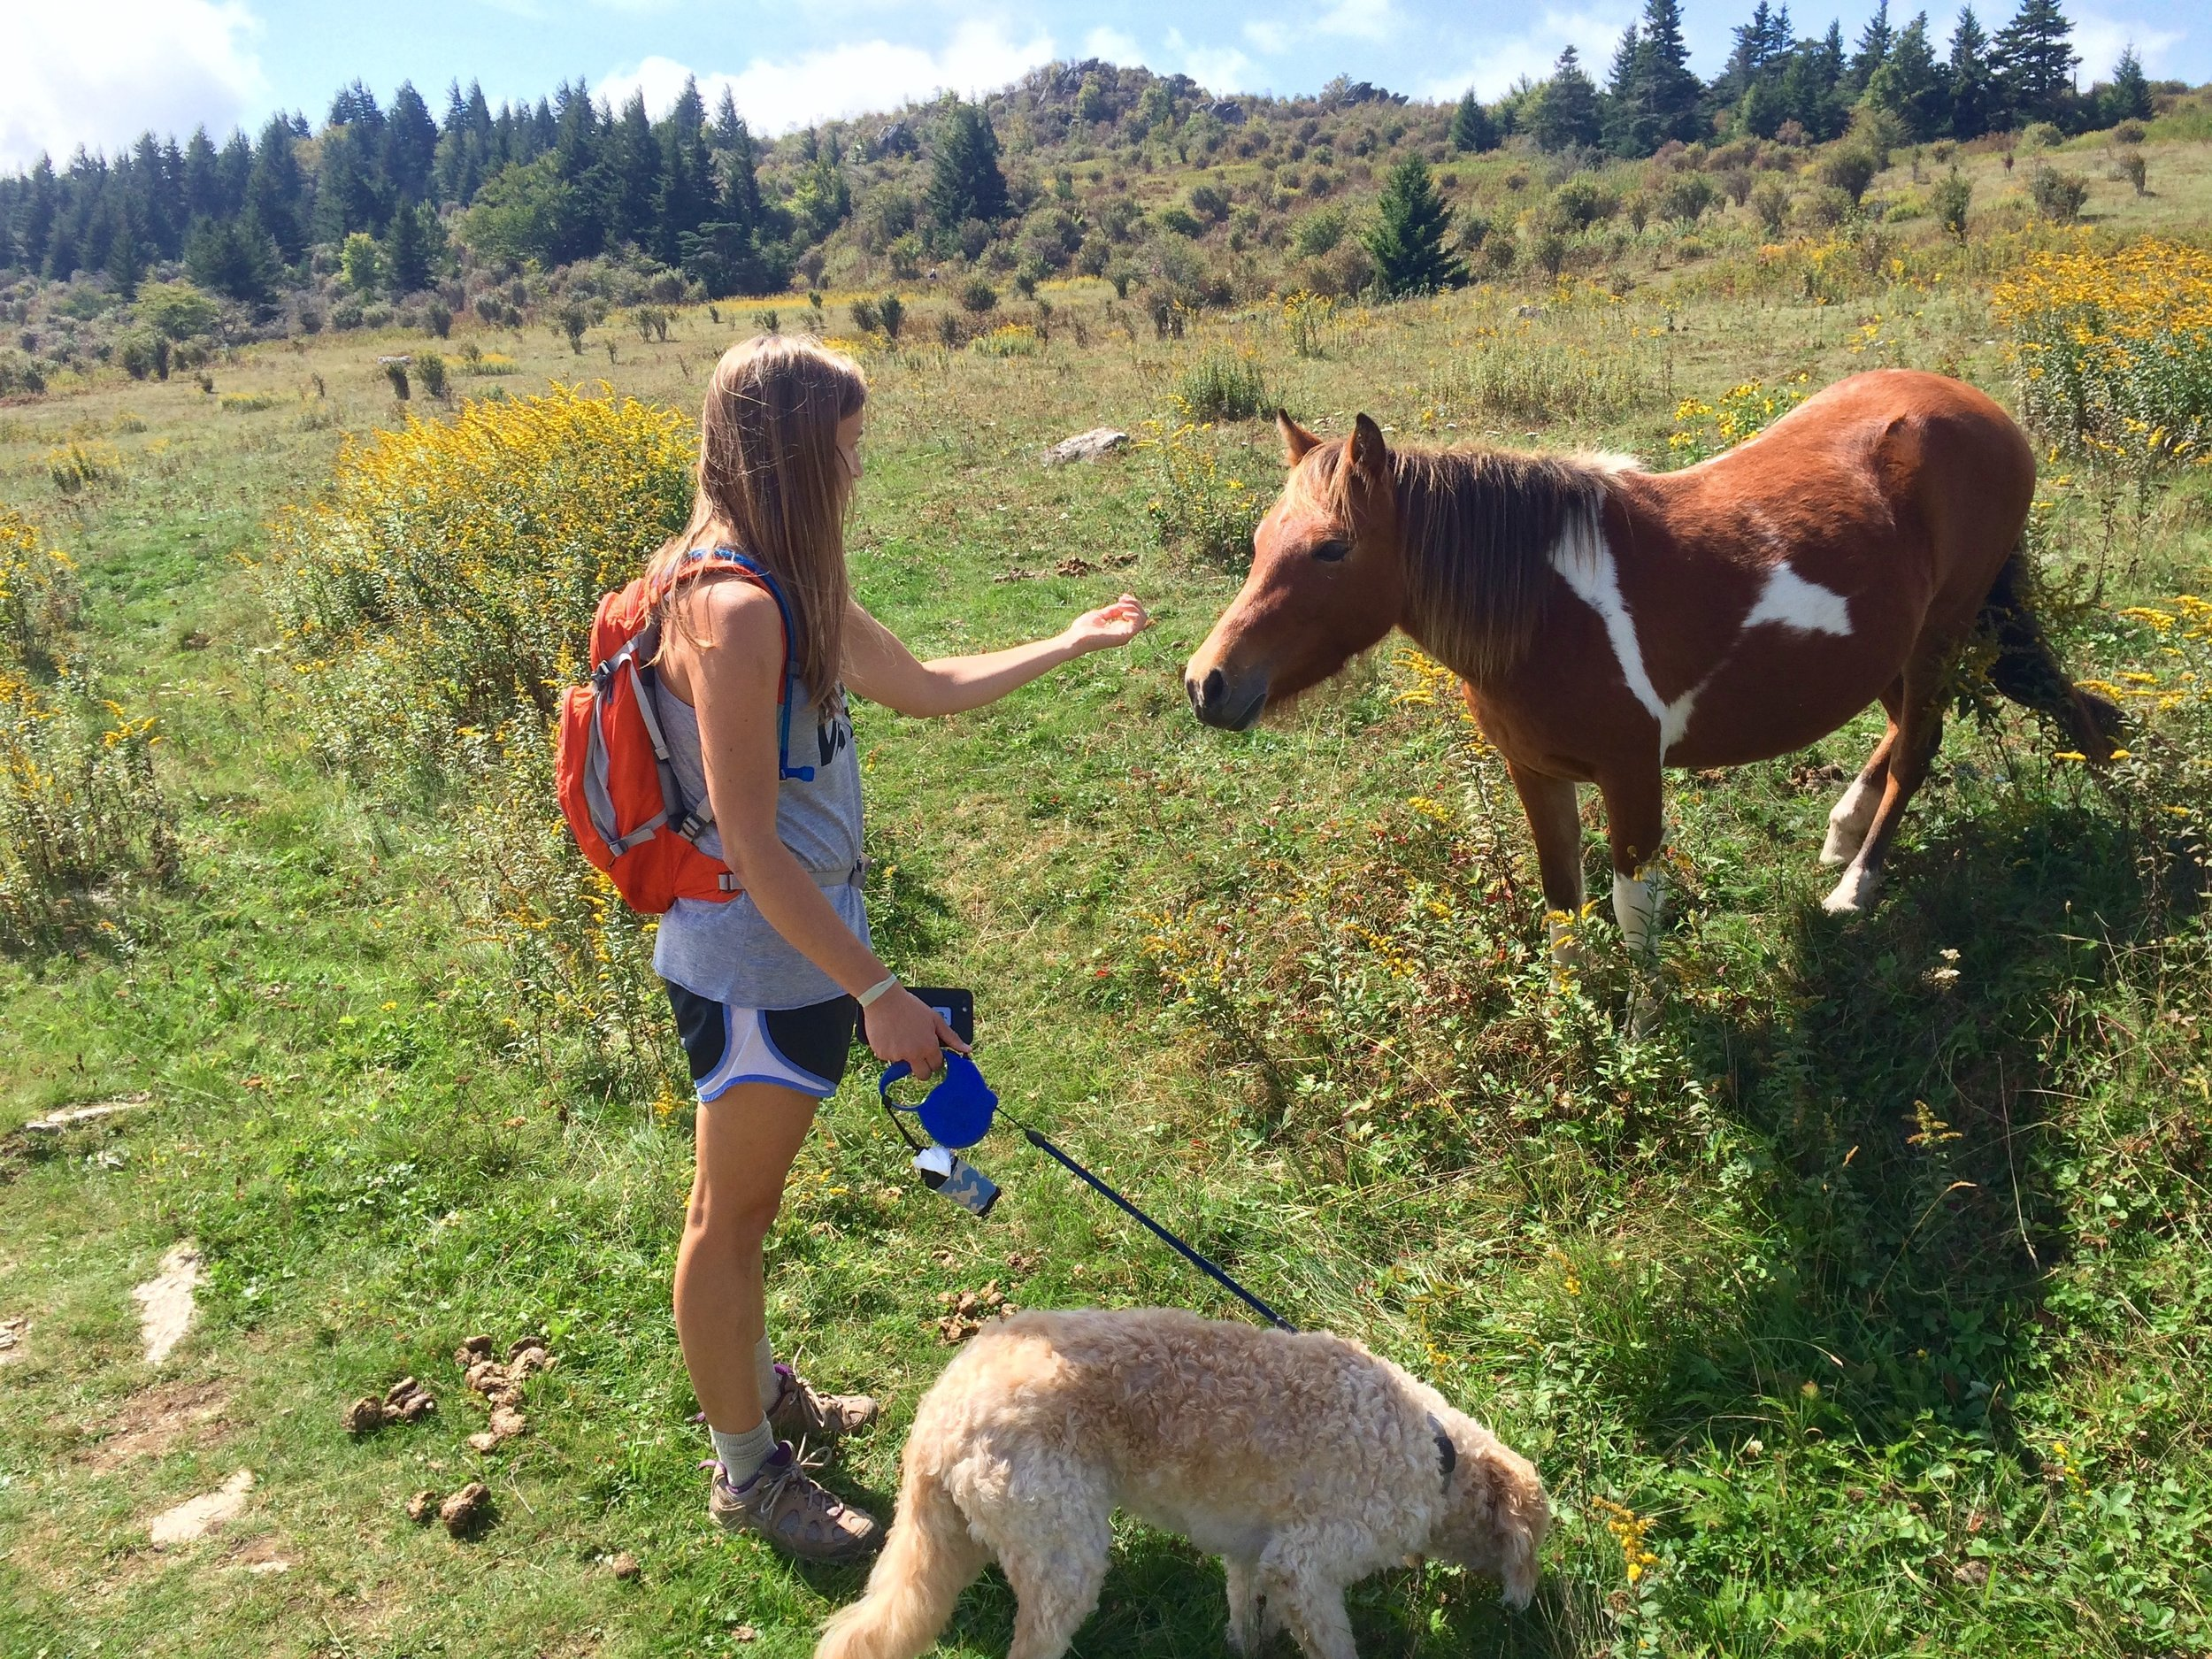 Allie and Cooper meeting one of the wild ponies that is a resident of Grayson Highlands state park.